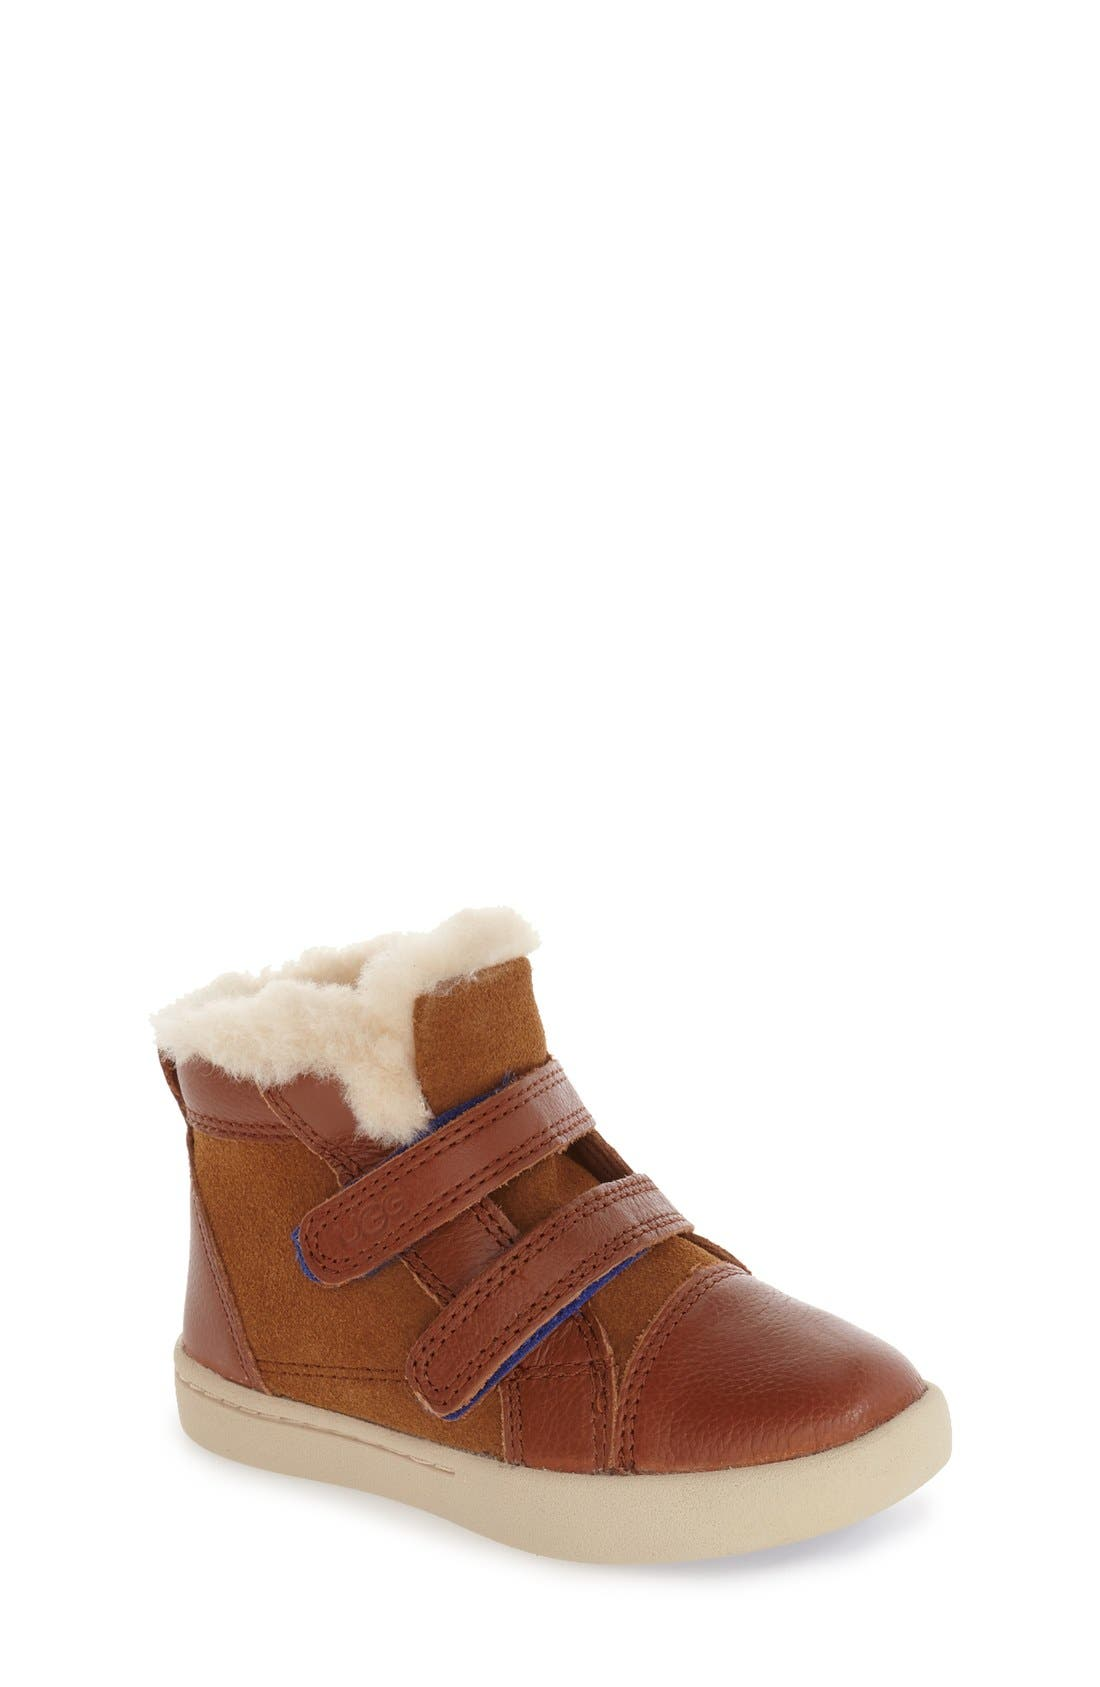 Alternate Image 1 Selected - UGG® Rennon High Top Sneaker (Walker & Toddler)